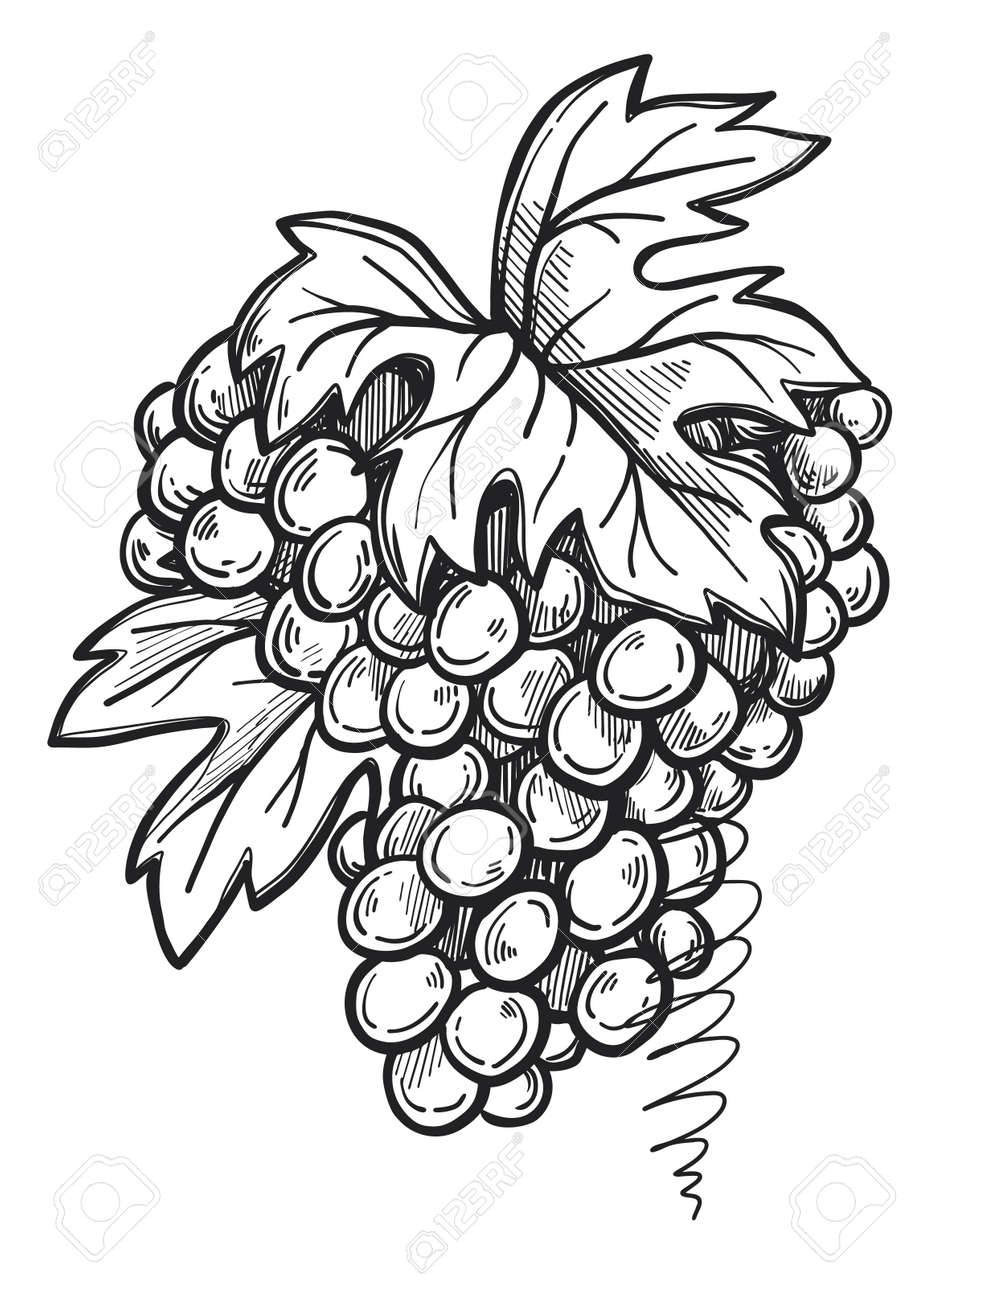 Bunch Of Grapes Freehand Pencil Drawing Isolated On White Background Vector Illustration Wine Grape With